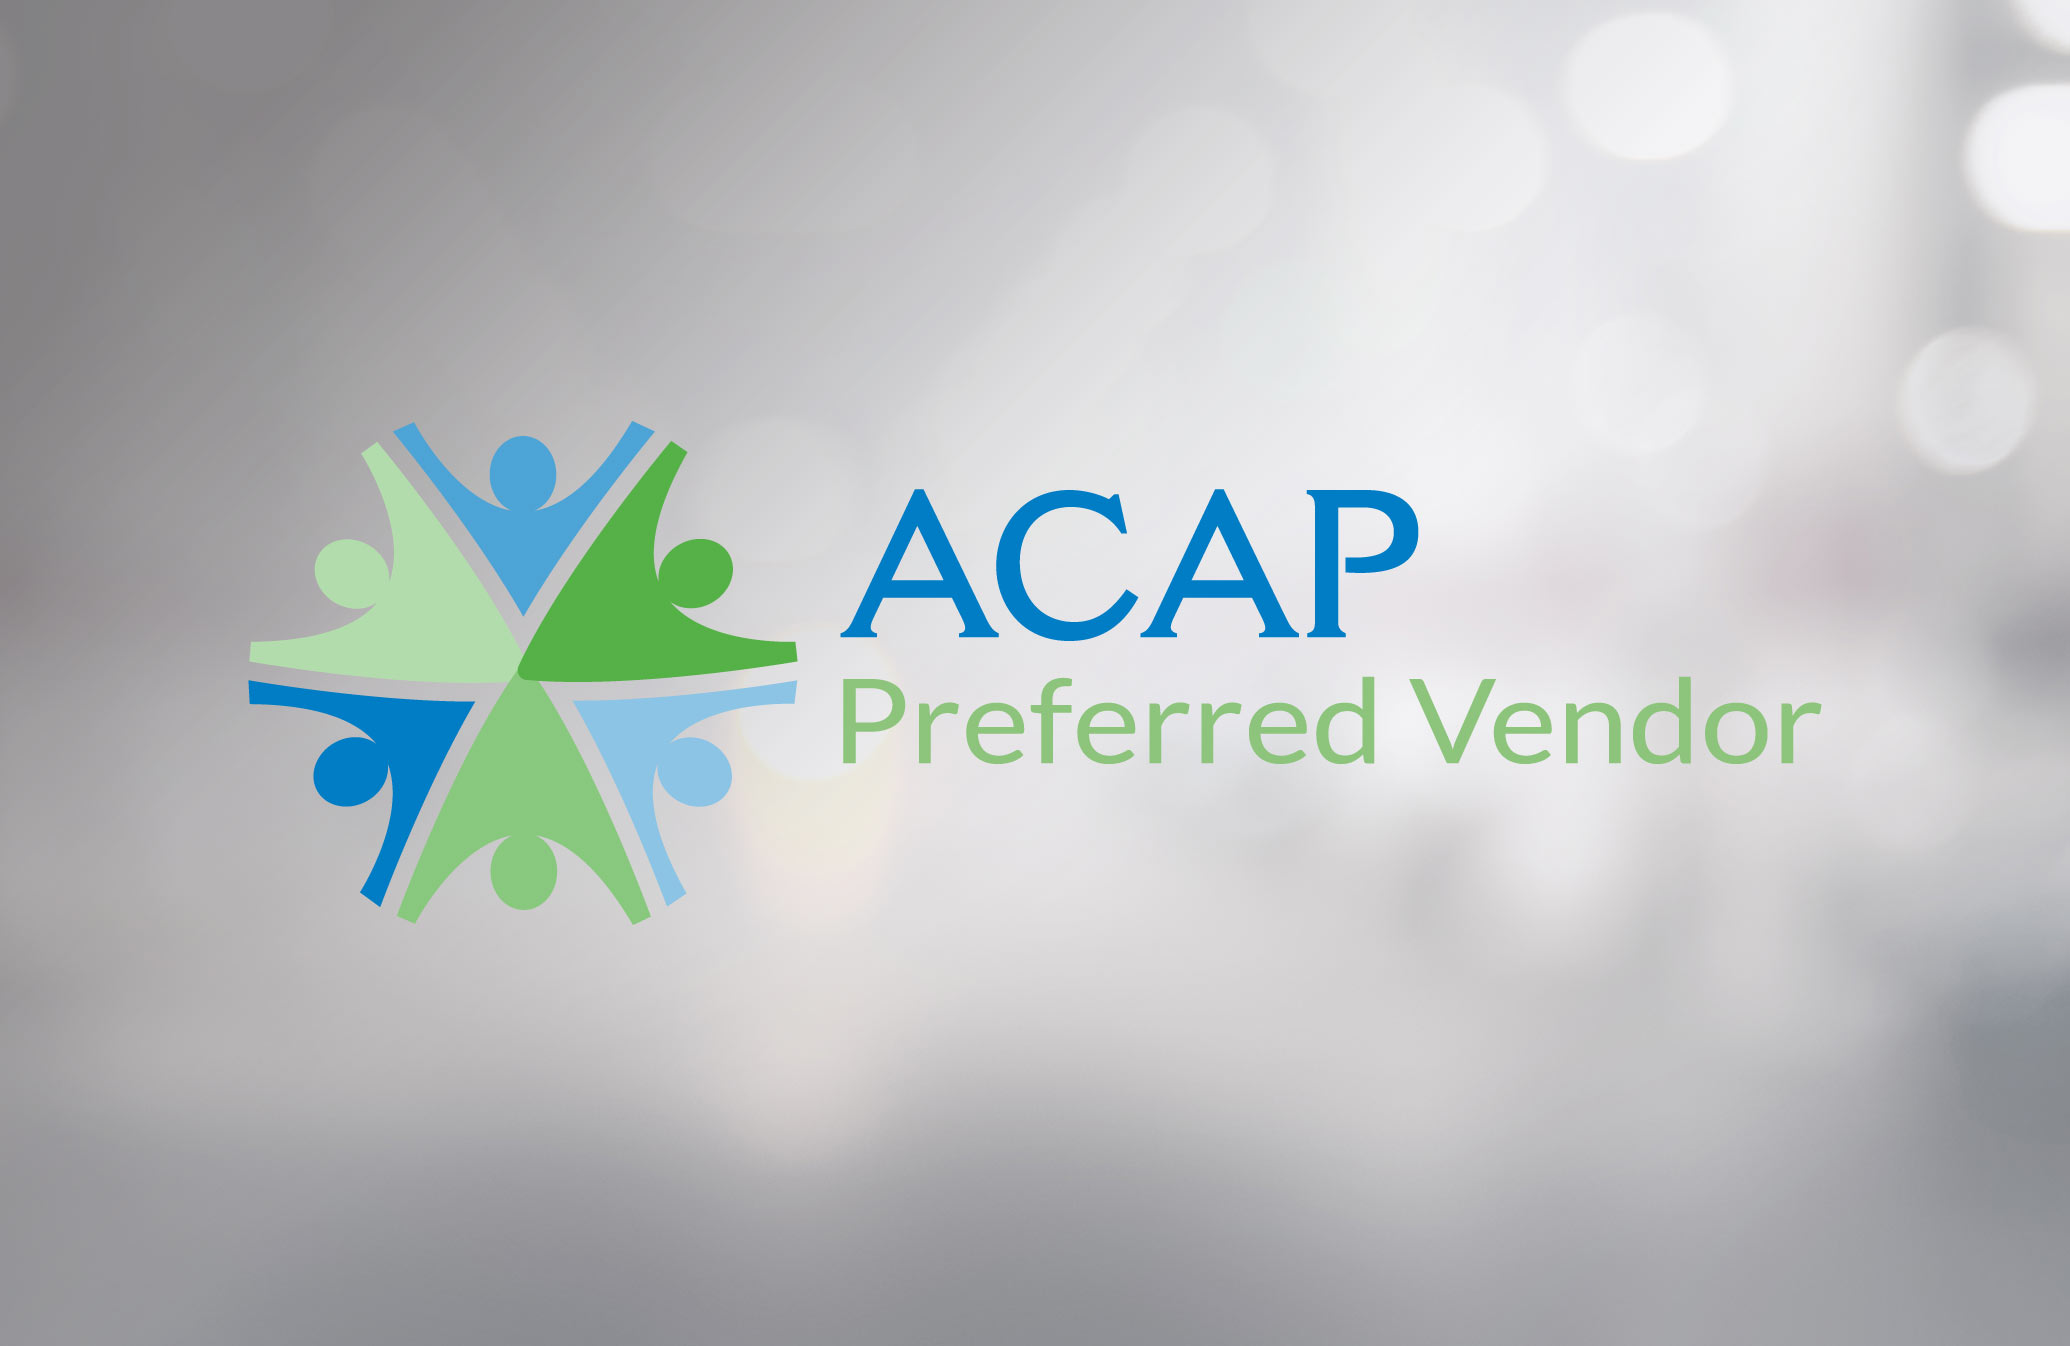 ACAP Preferred Vendor